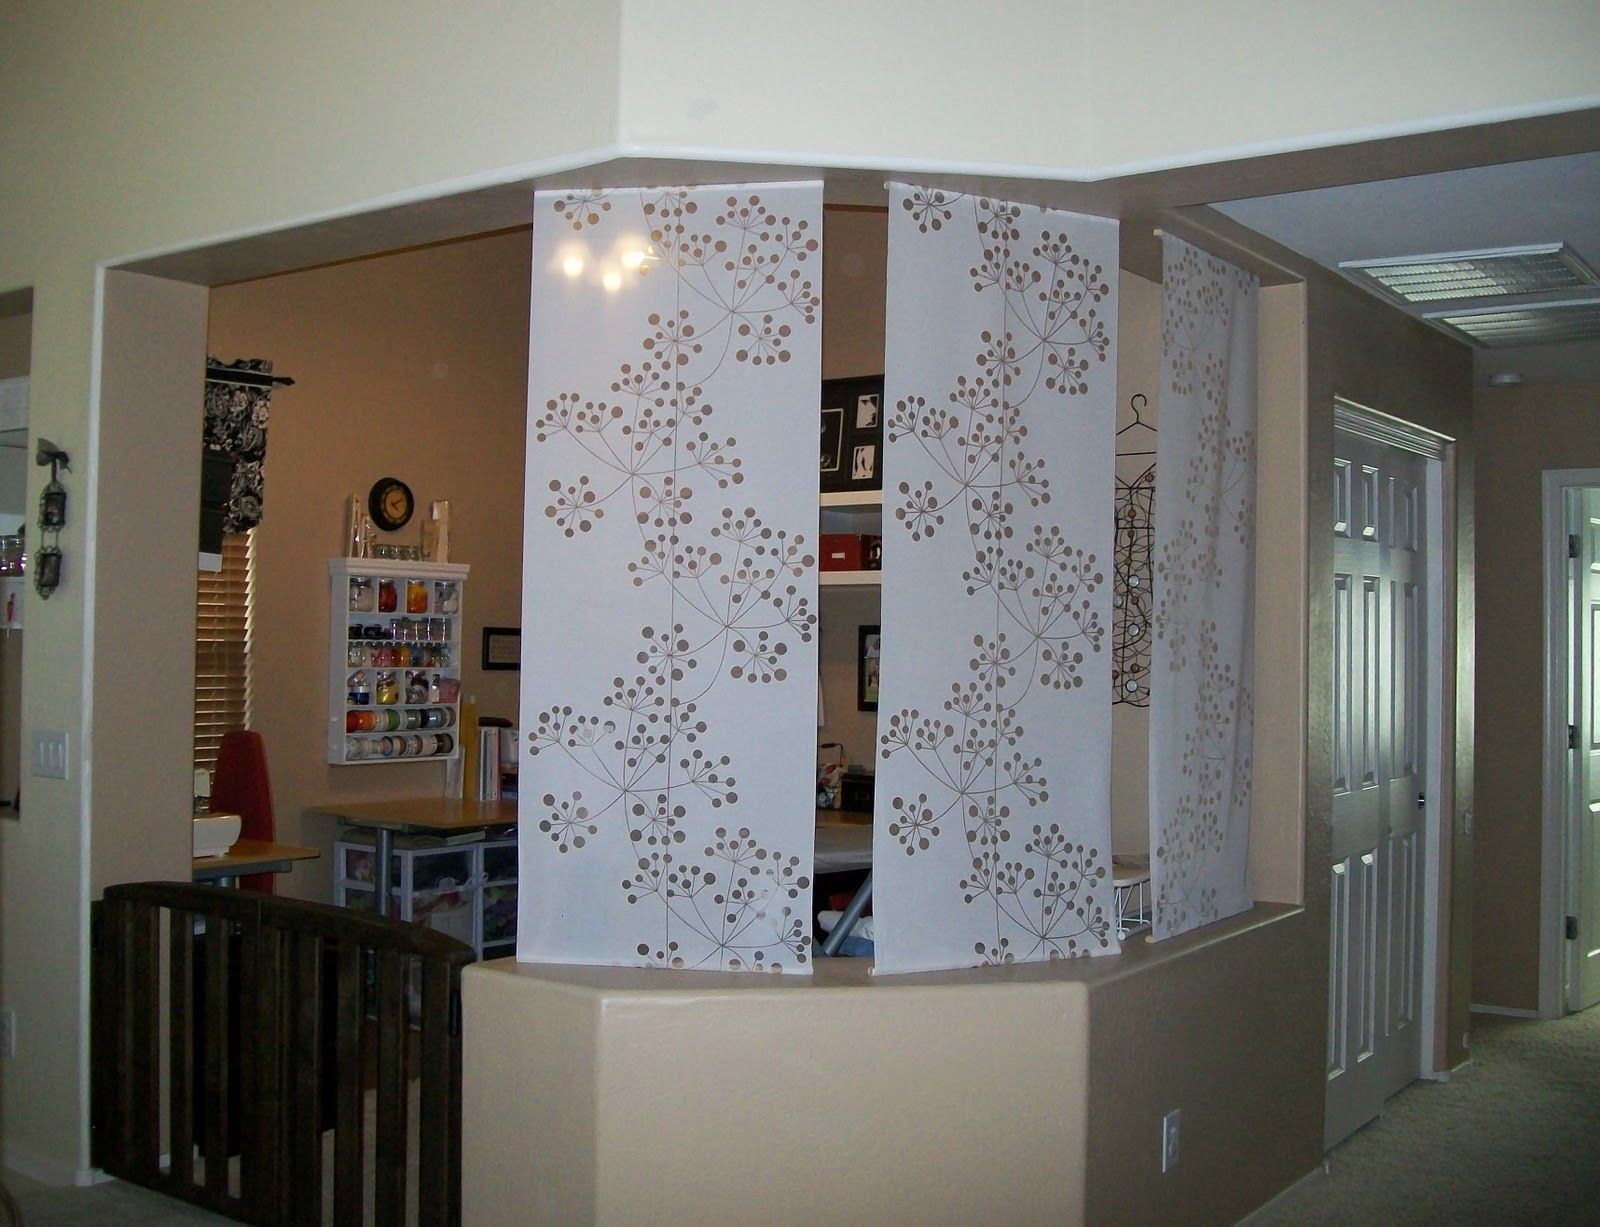 Splendid Room Divider Ikea For Maximizing Room Space In Your House Room Divider Curtain Fabric Room Dividers Room Divider Walls